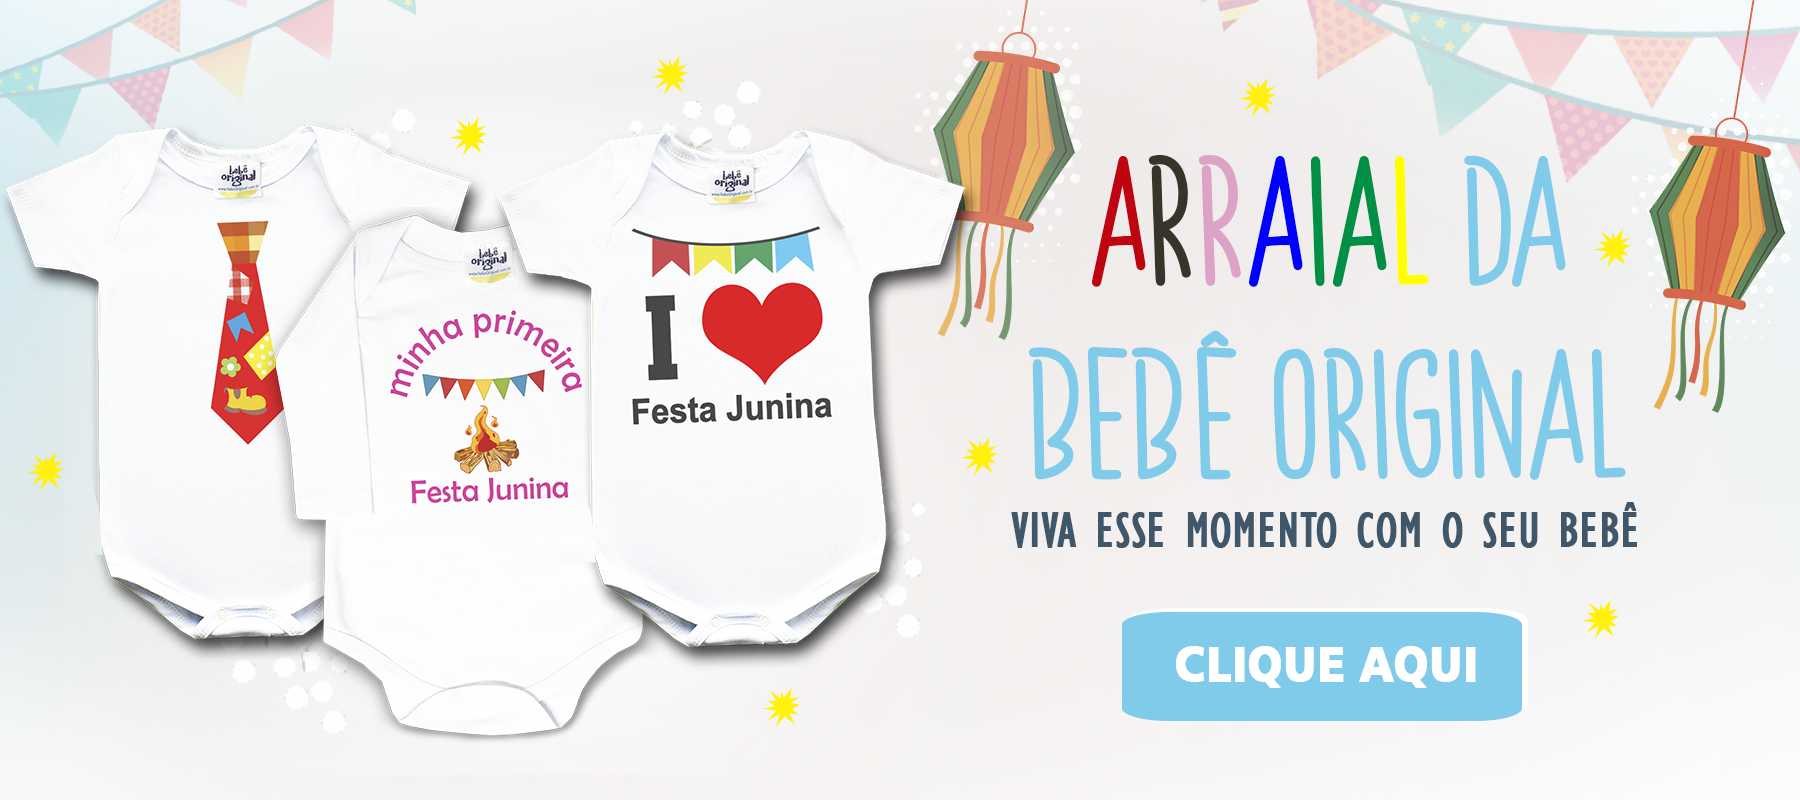 Arraial - Festa Junina